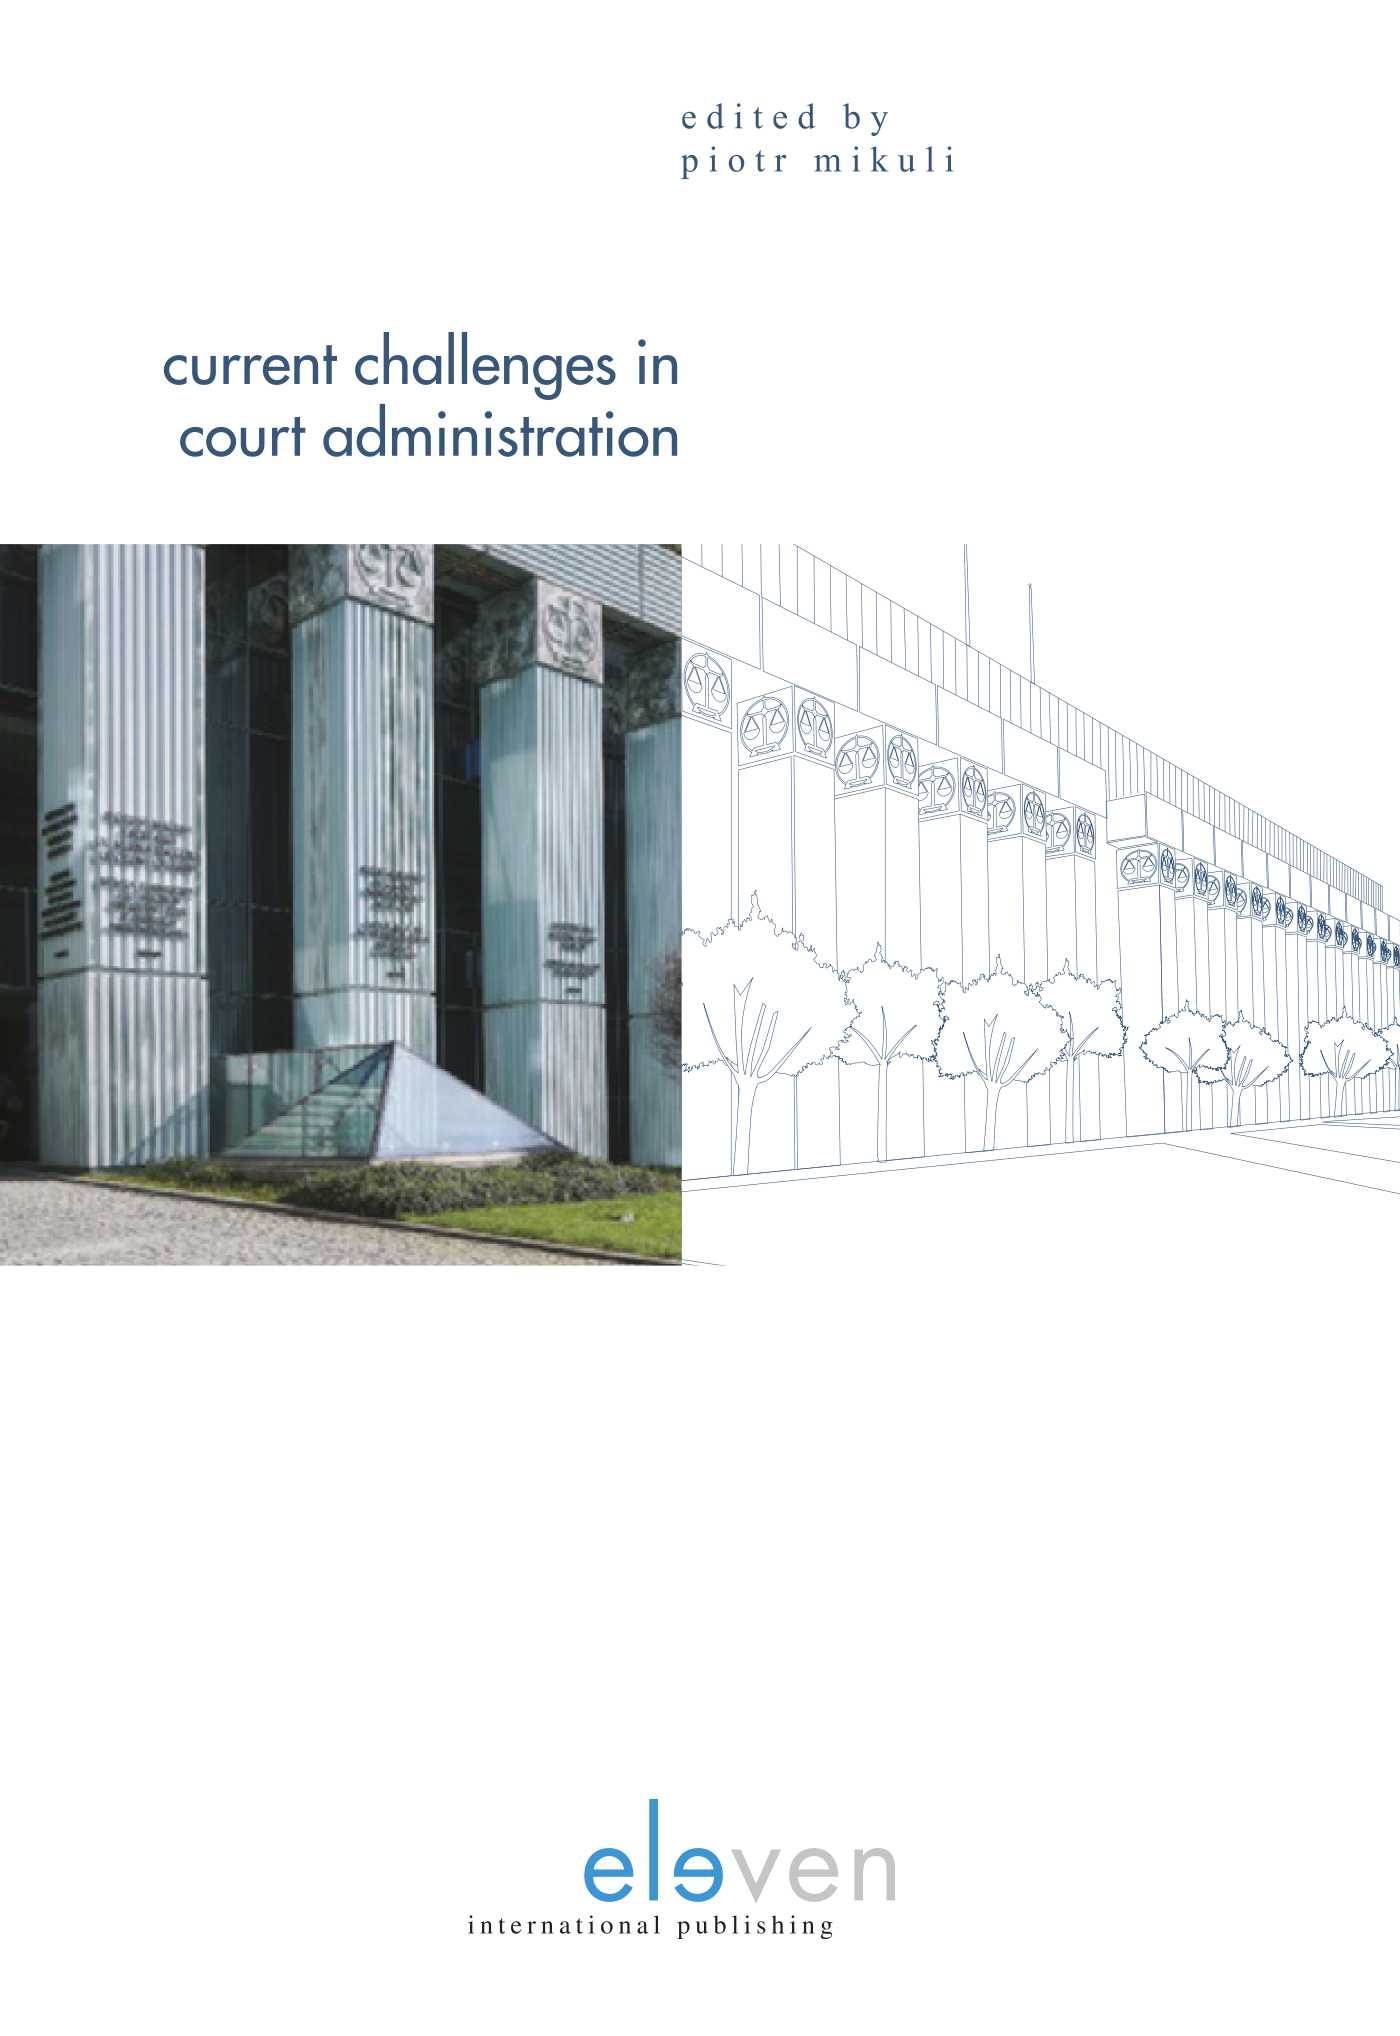 Current challenges in court administration